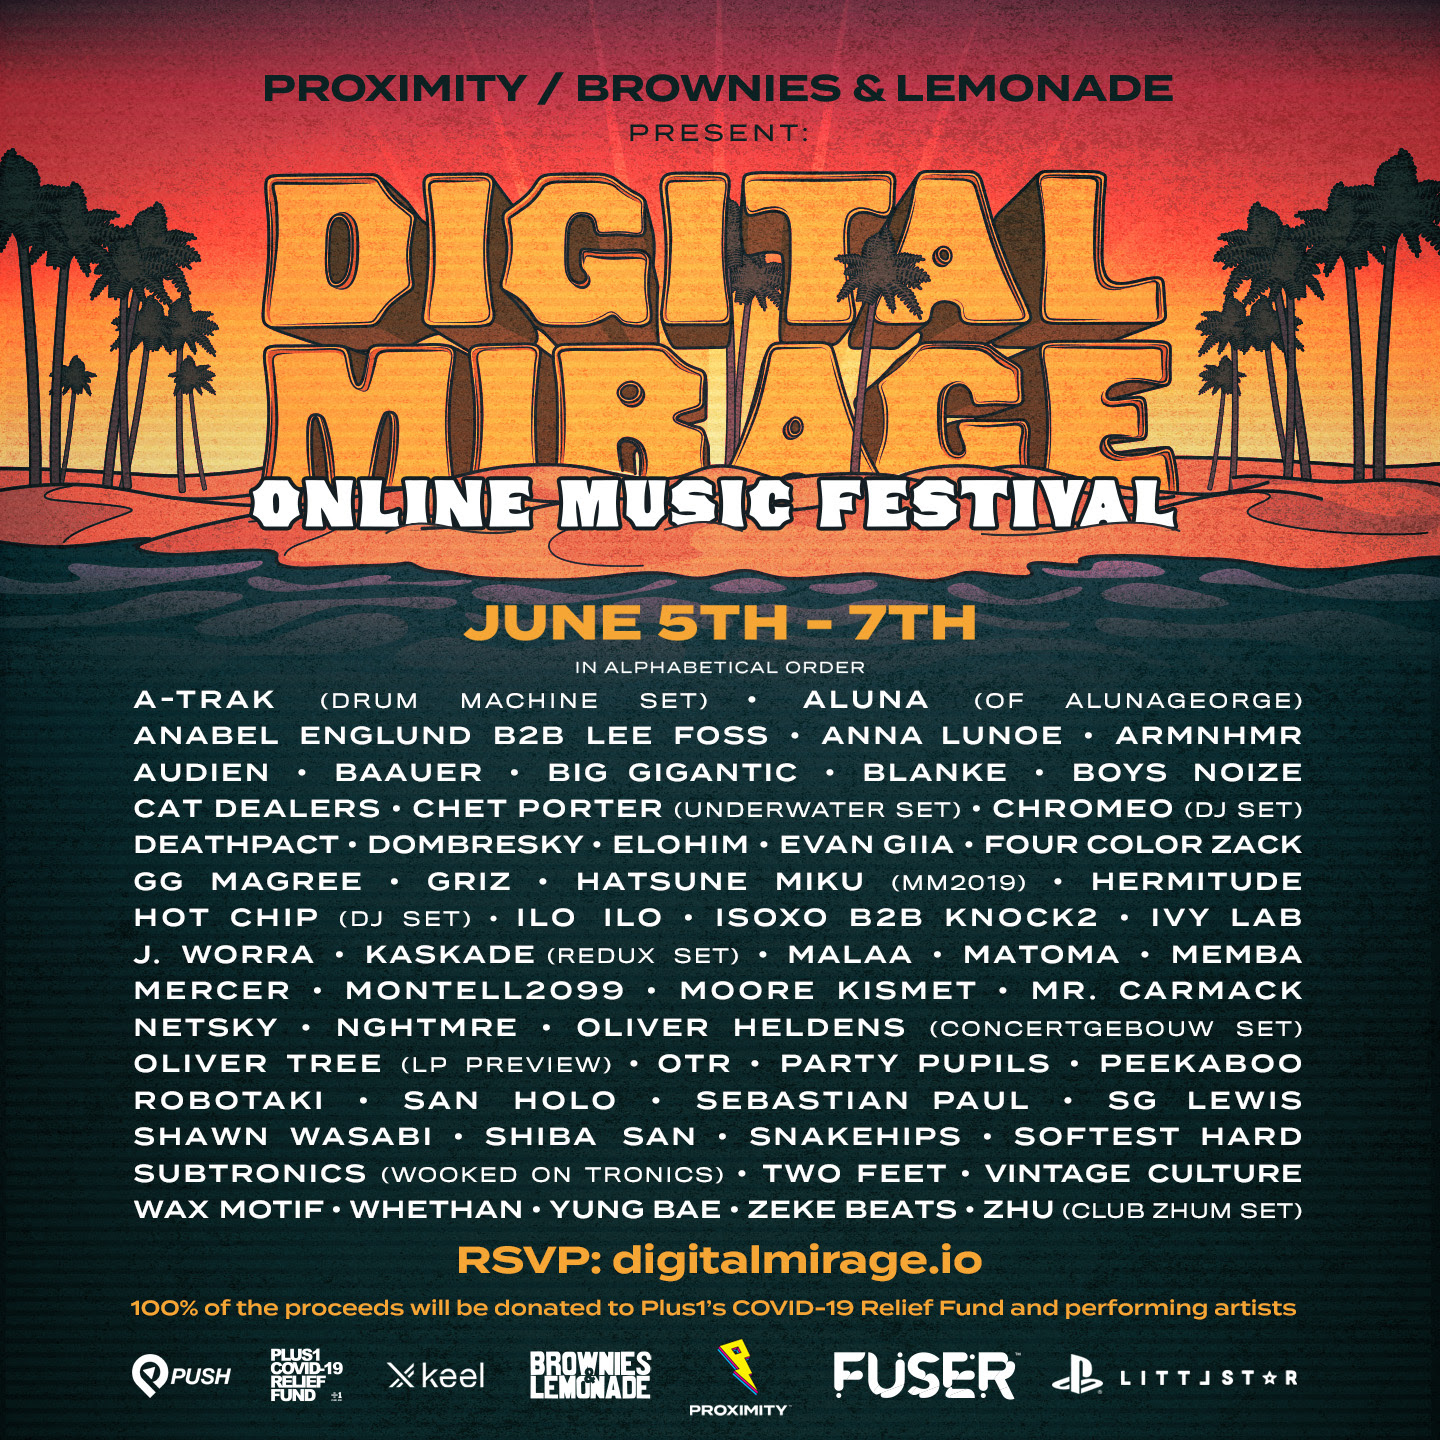 Digital Mirage 2 Lineup Featuring Artists